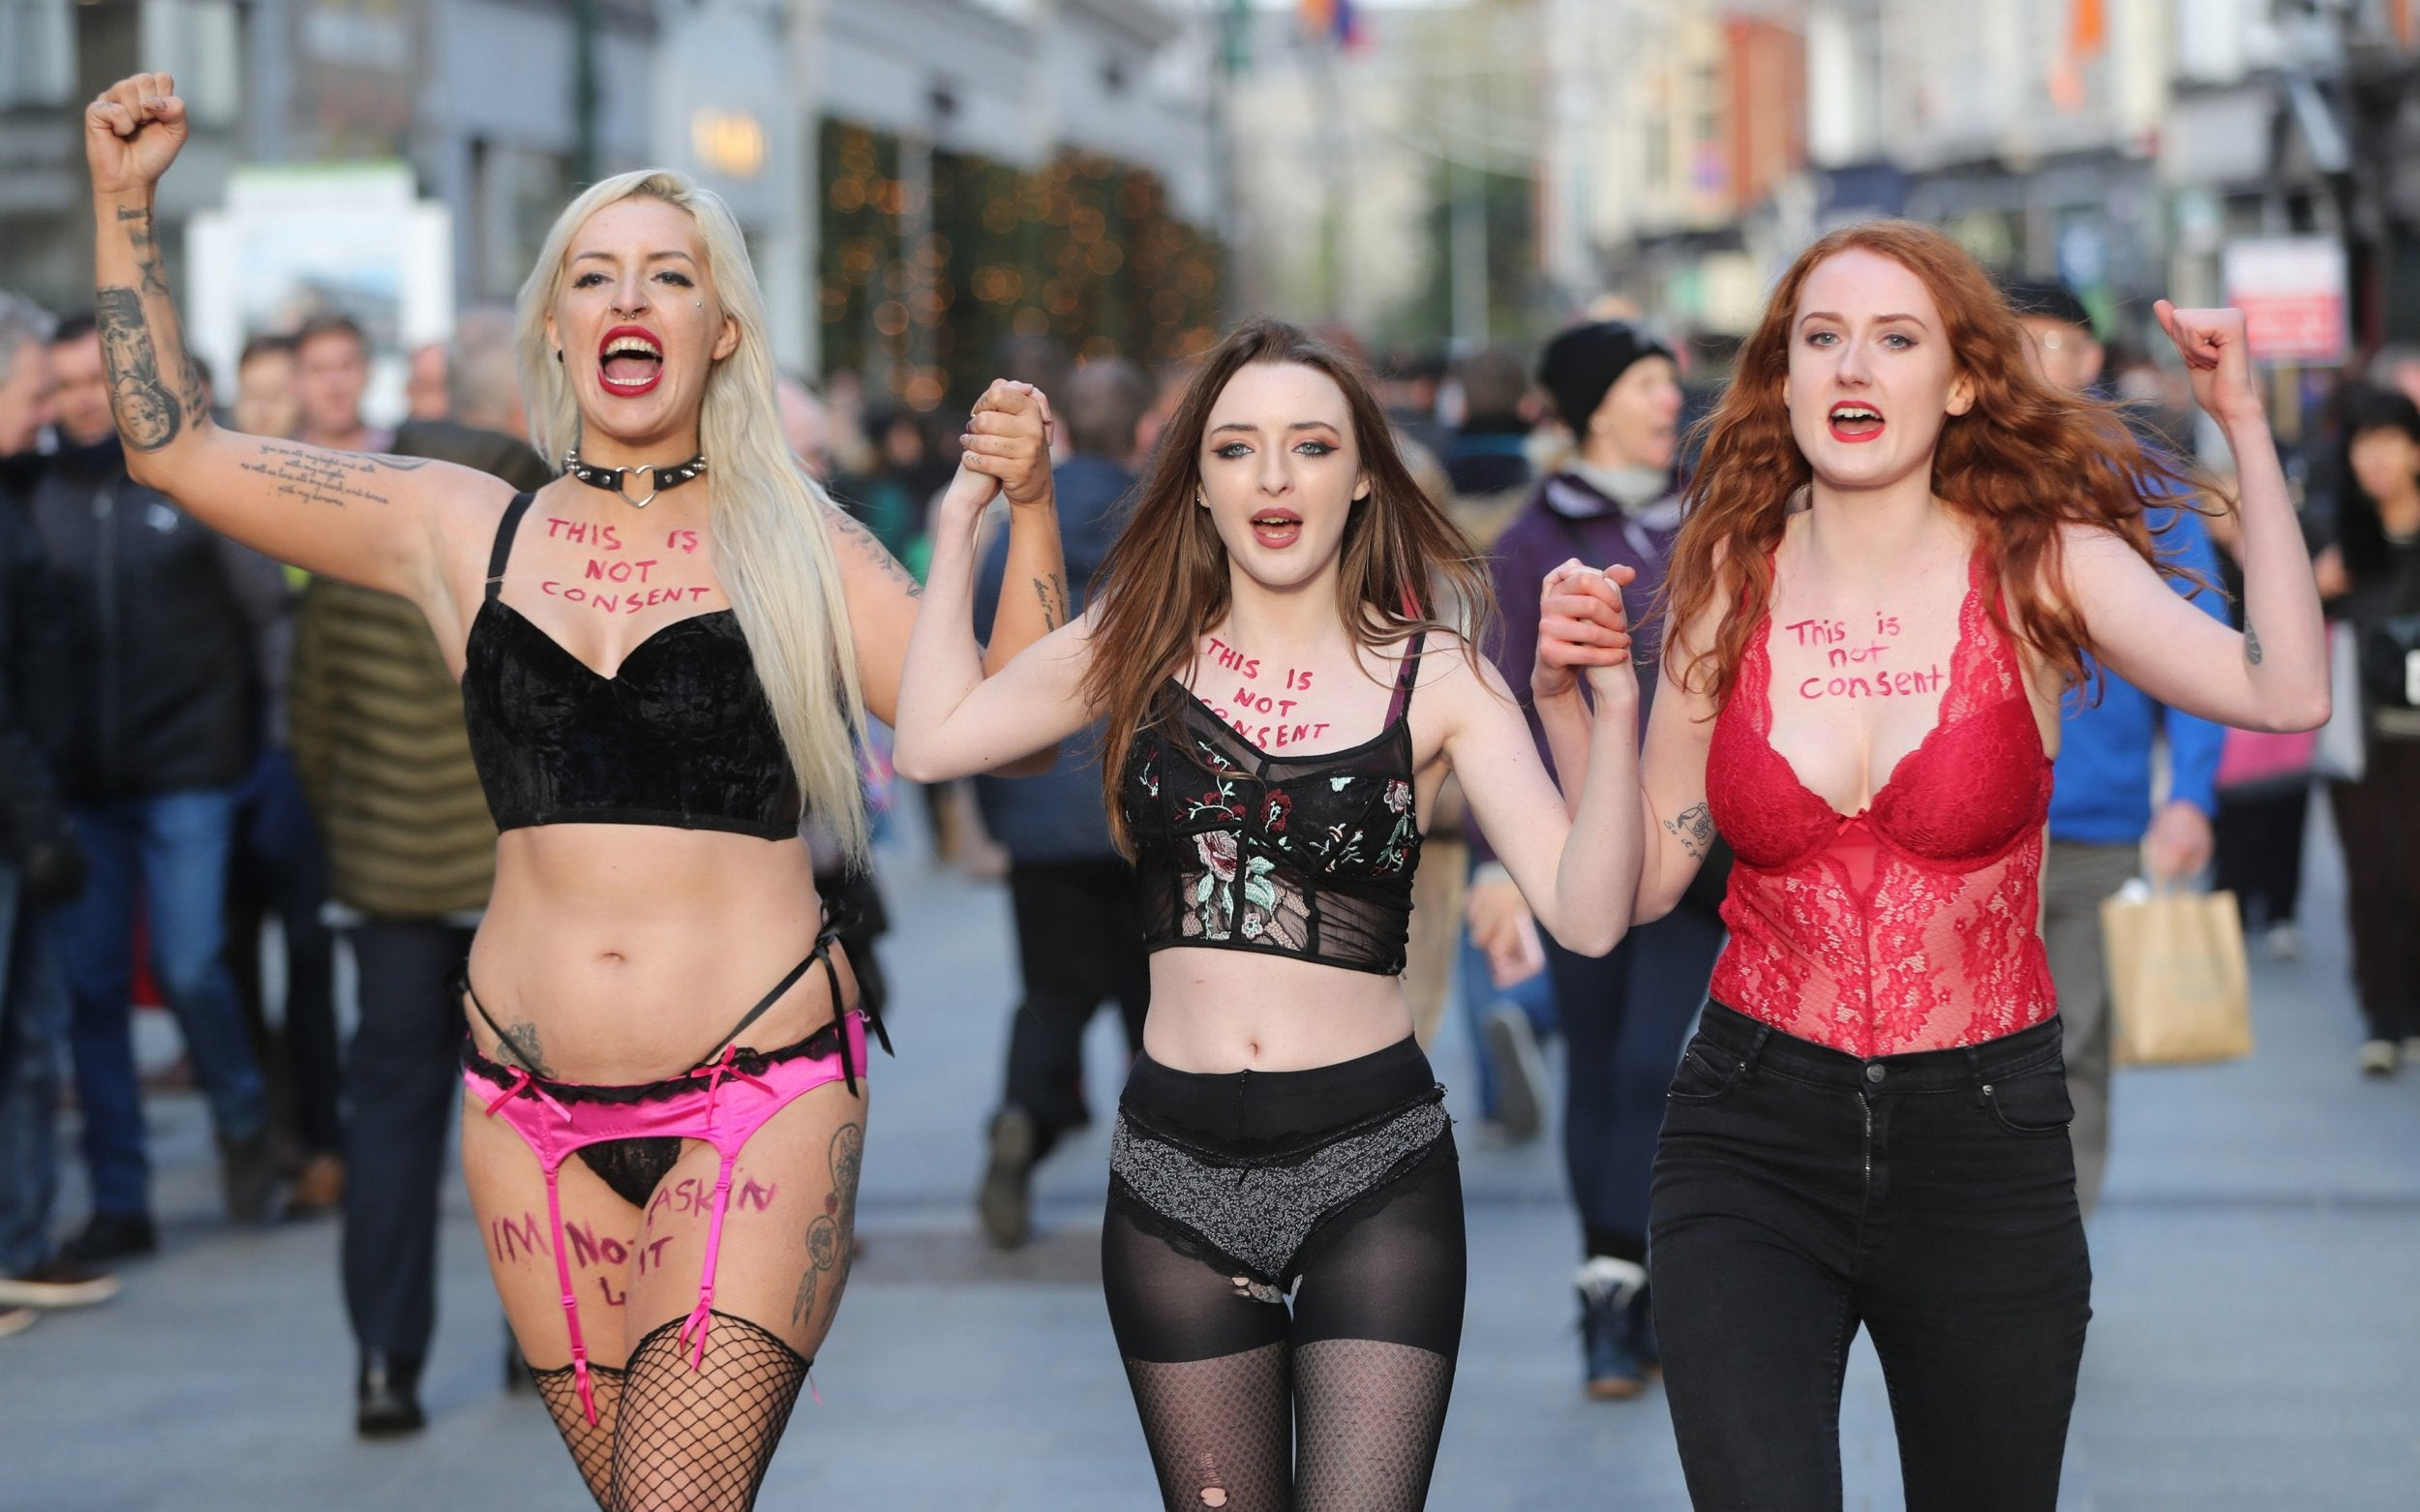 Women march in Dublin wearing underwear to demand rape trial reform | The  Independent